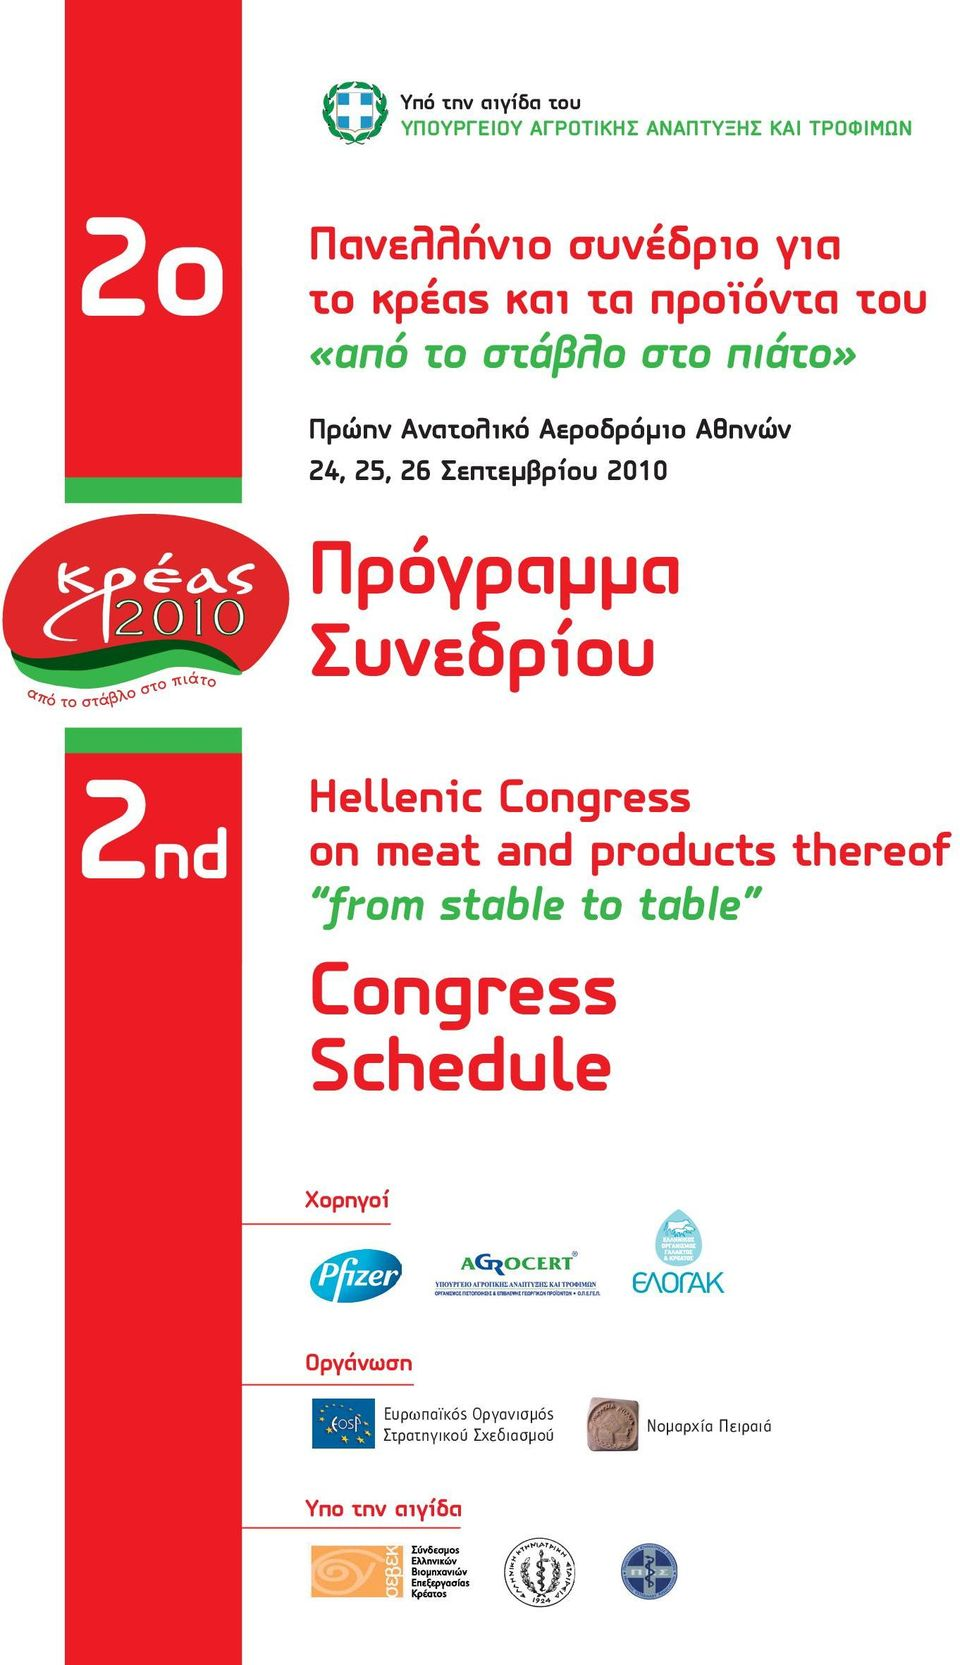 00 Πρόγραμμα Συνεδρίου nd Hellenic Congress on meat and products thereof from stable to table